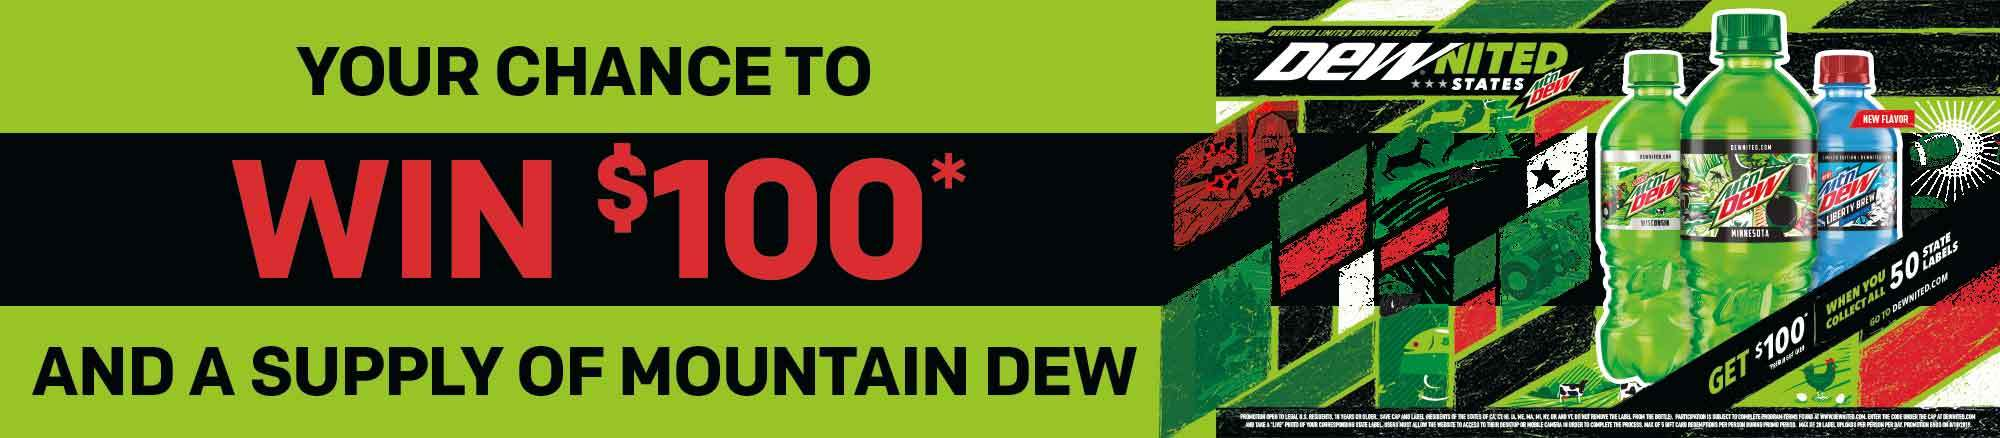 Enter for a chance to win $100* and a supply of Mountain Dew! *Pre-paid gift card